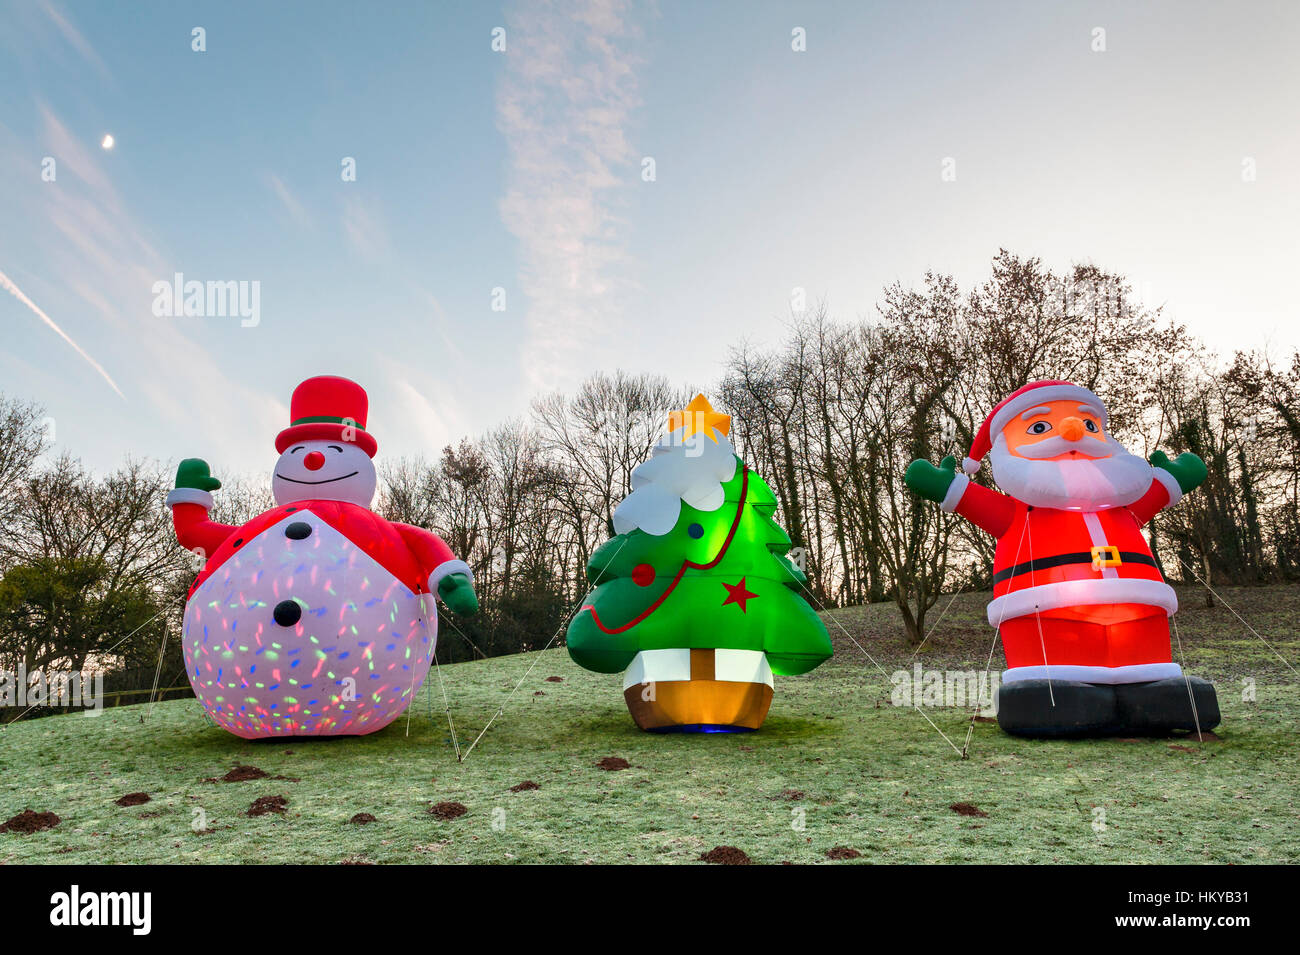 Huge illuminated inflatable Christmas figures stand in a frosty field in rural Herefordshire, UK. - Stock Image